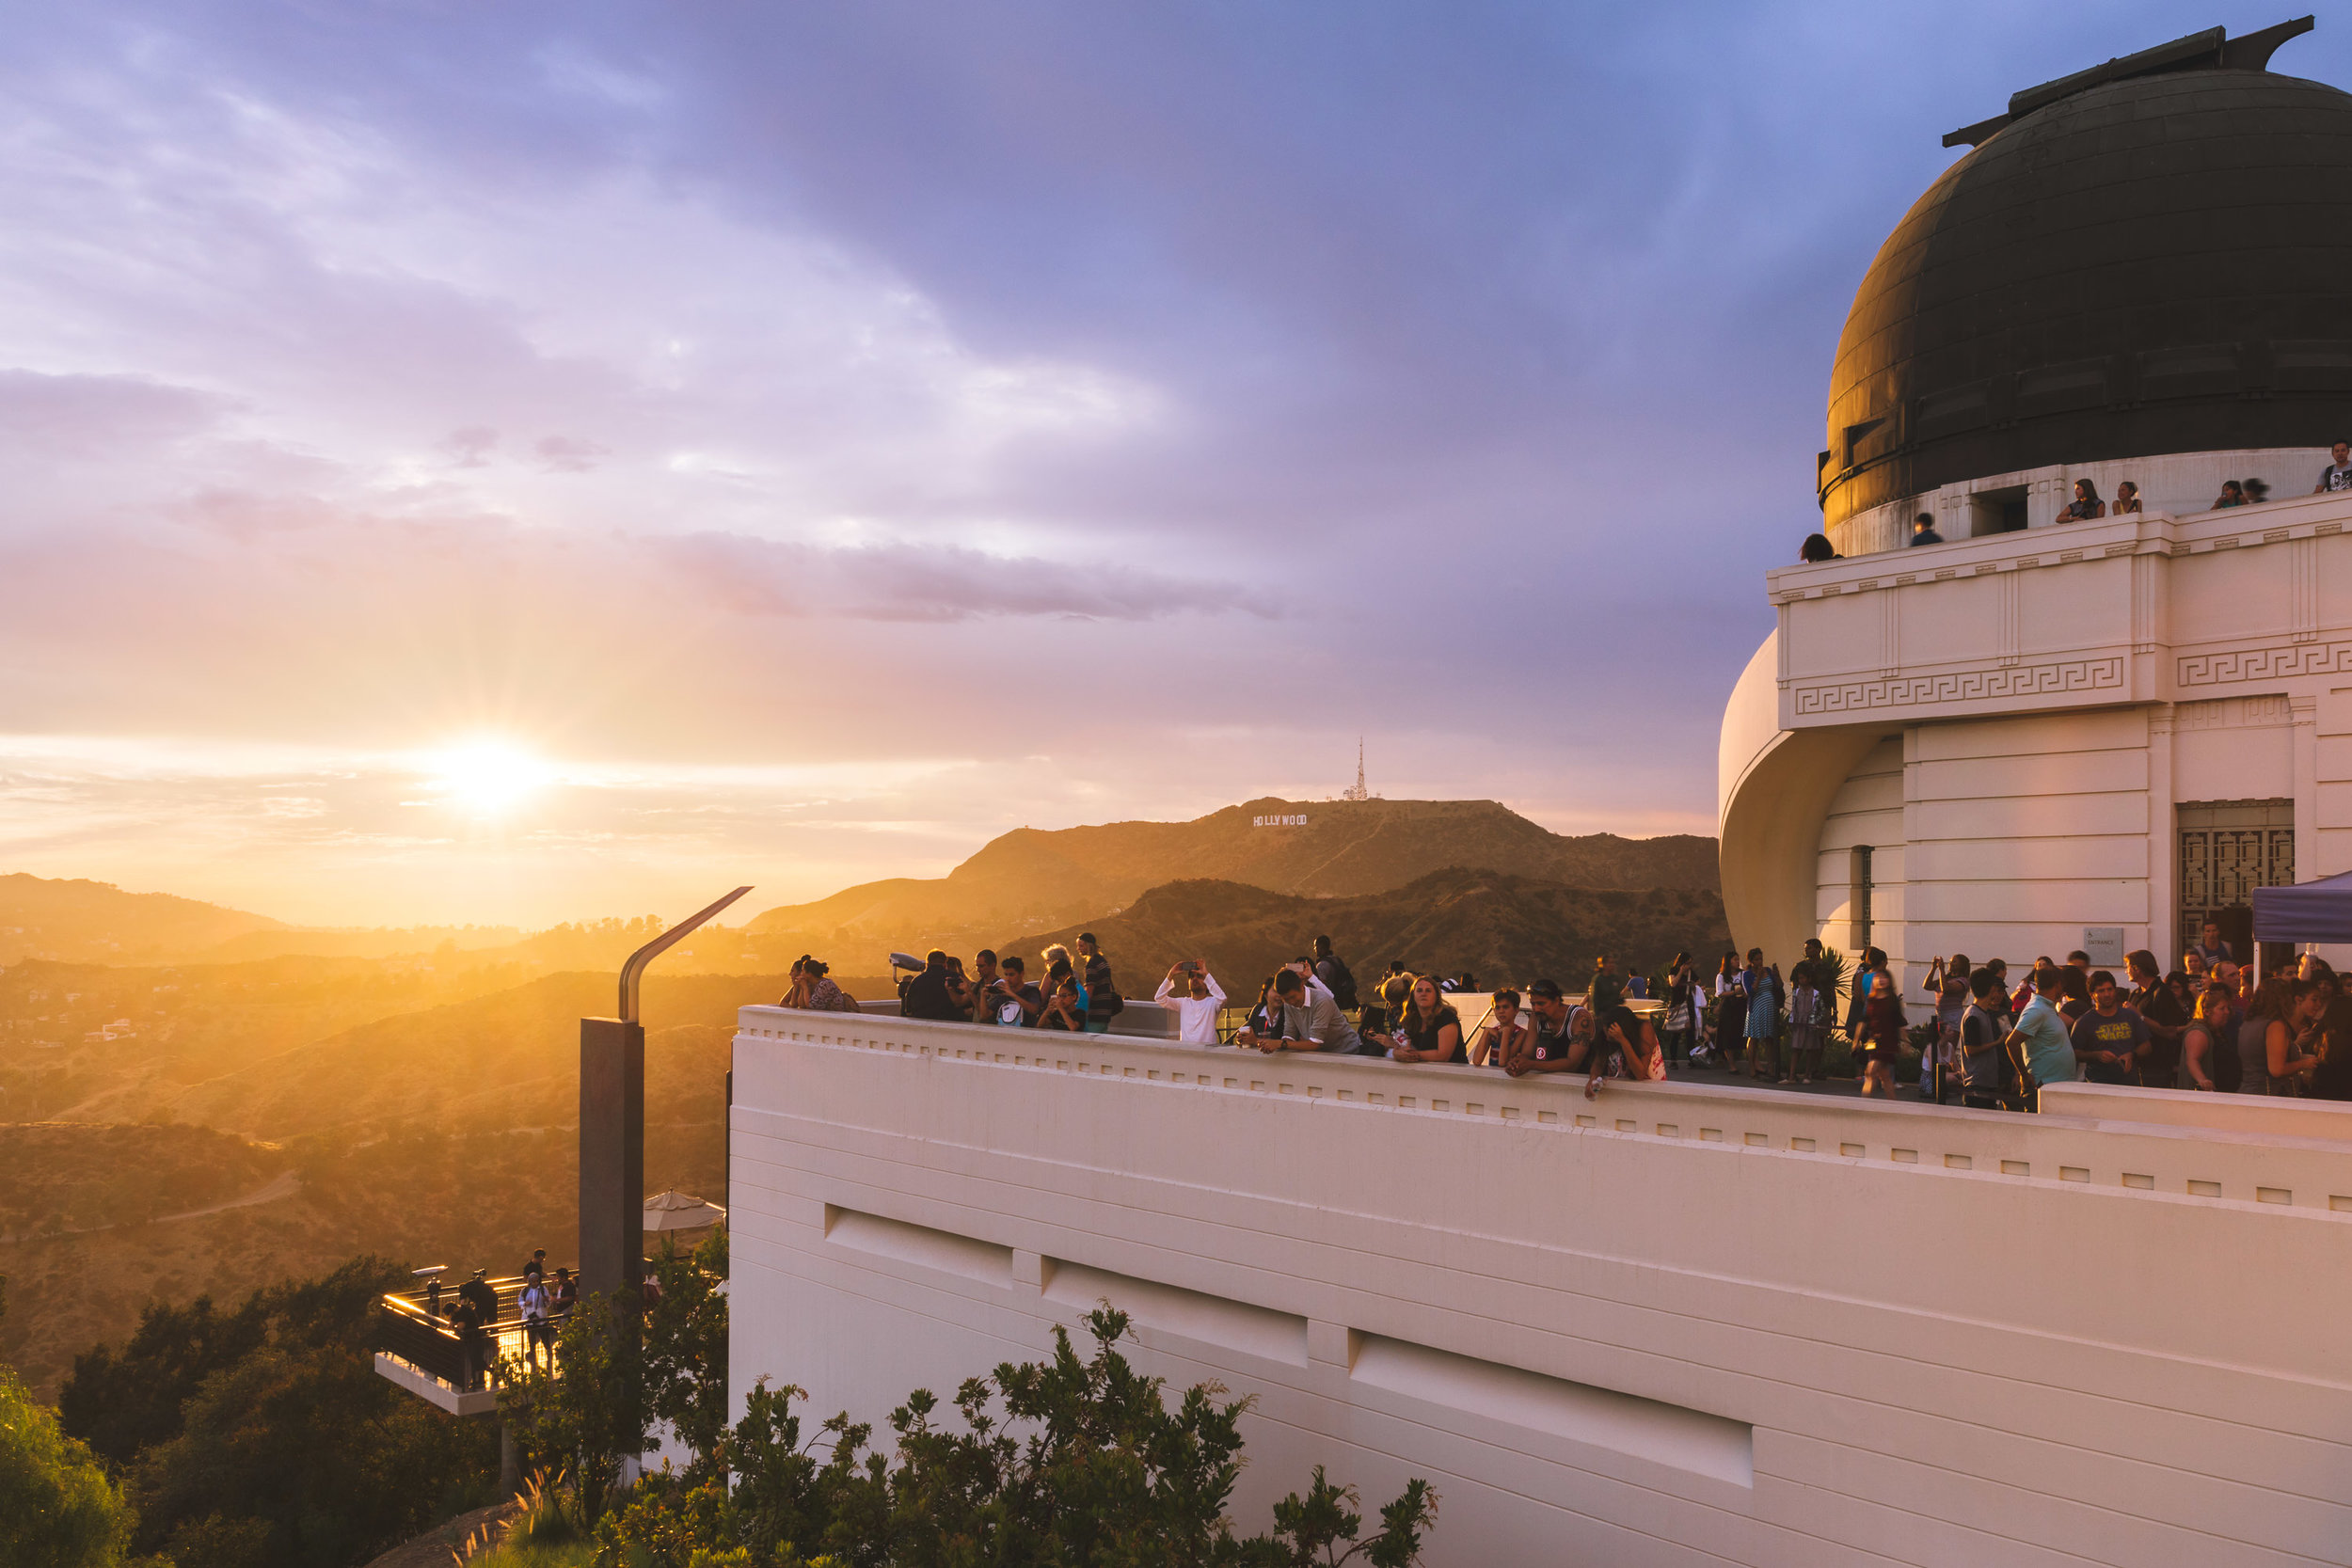 griffith_observatory-0628-Edit.jpg